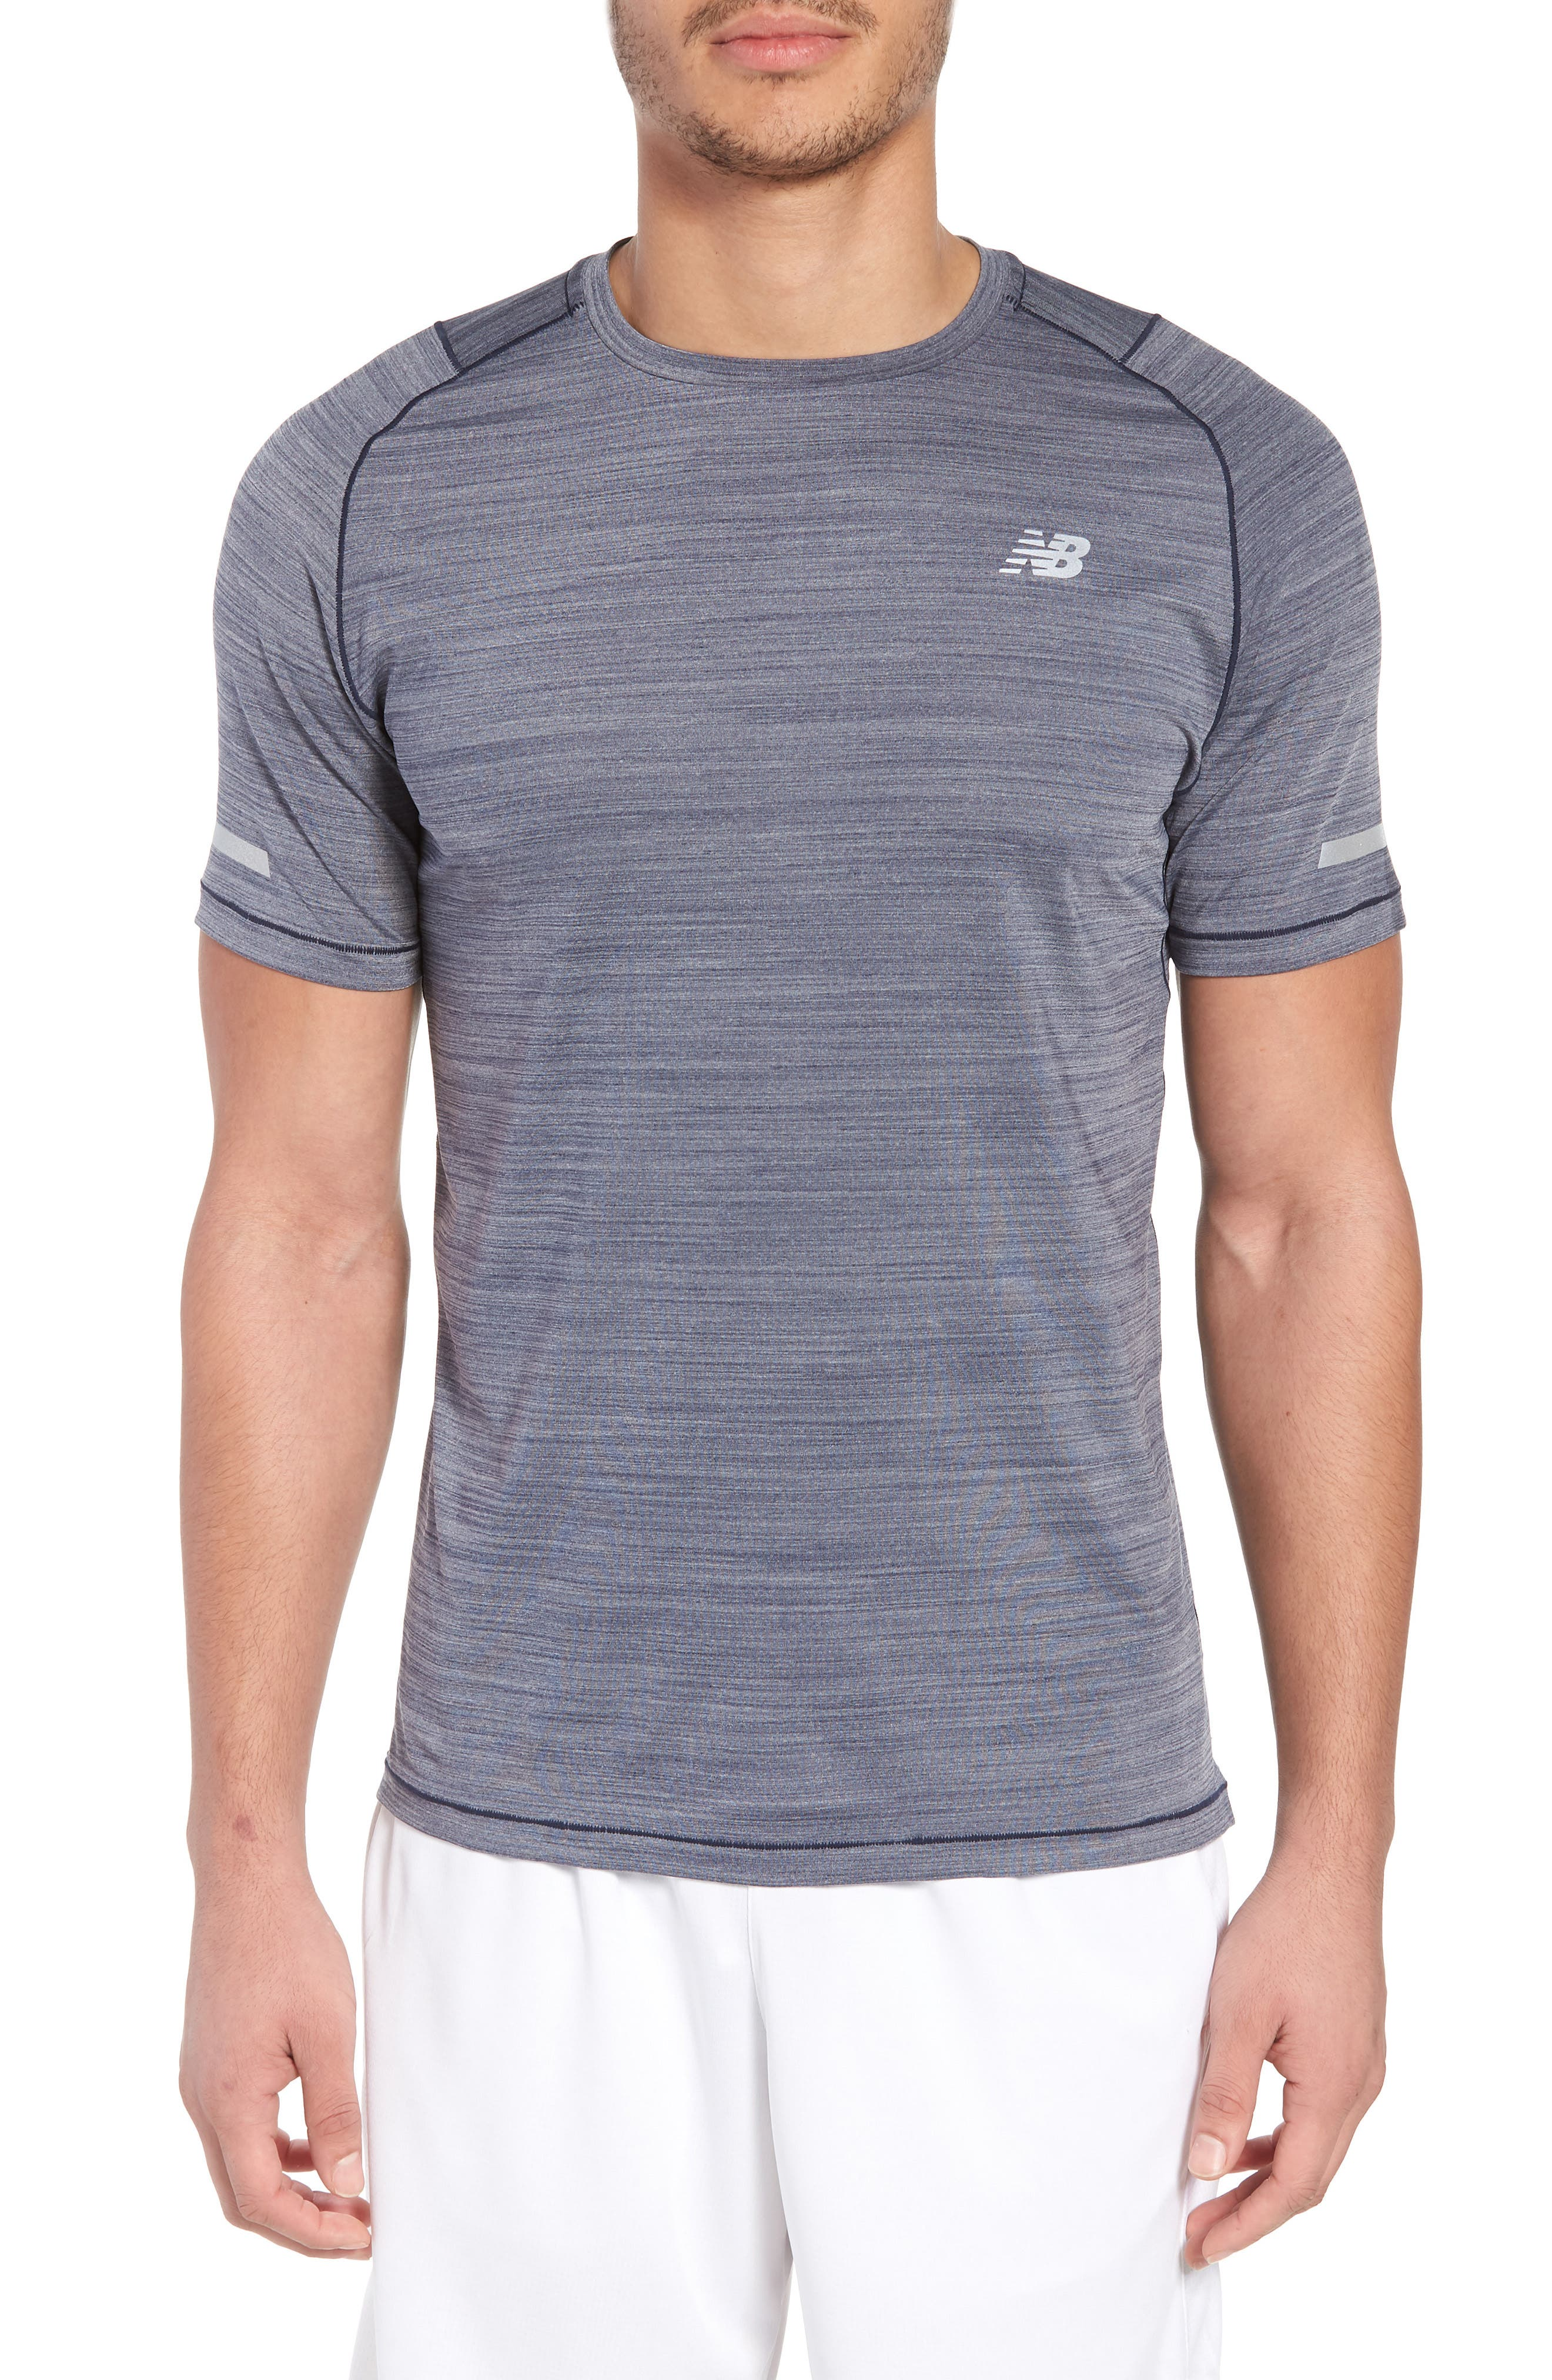 New Balance Seasonless Crewneck T-Shirt